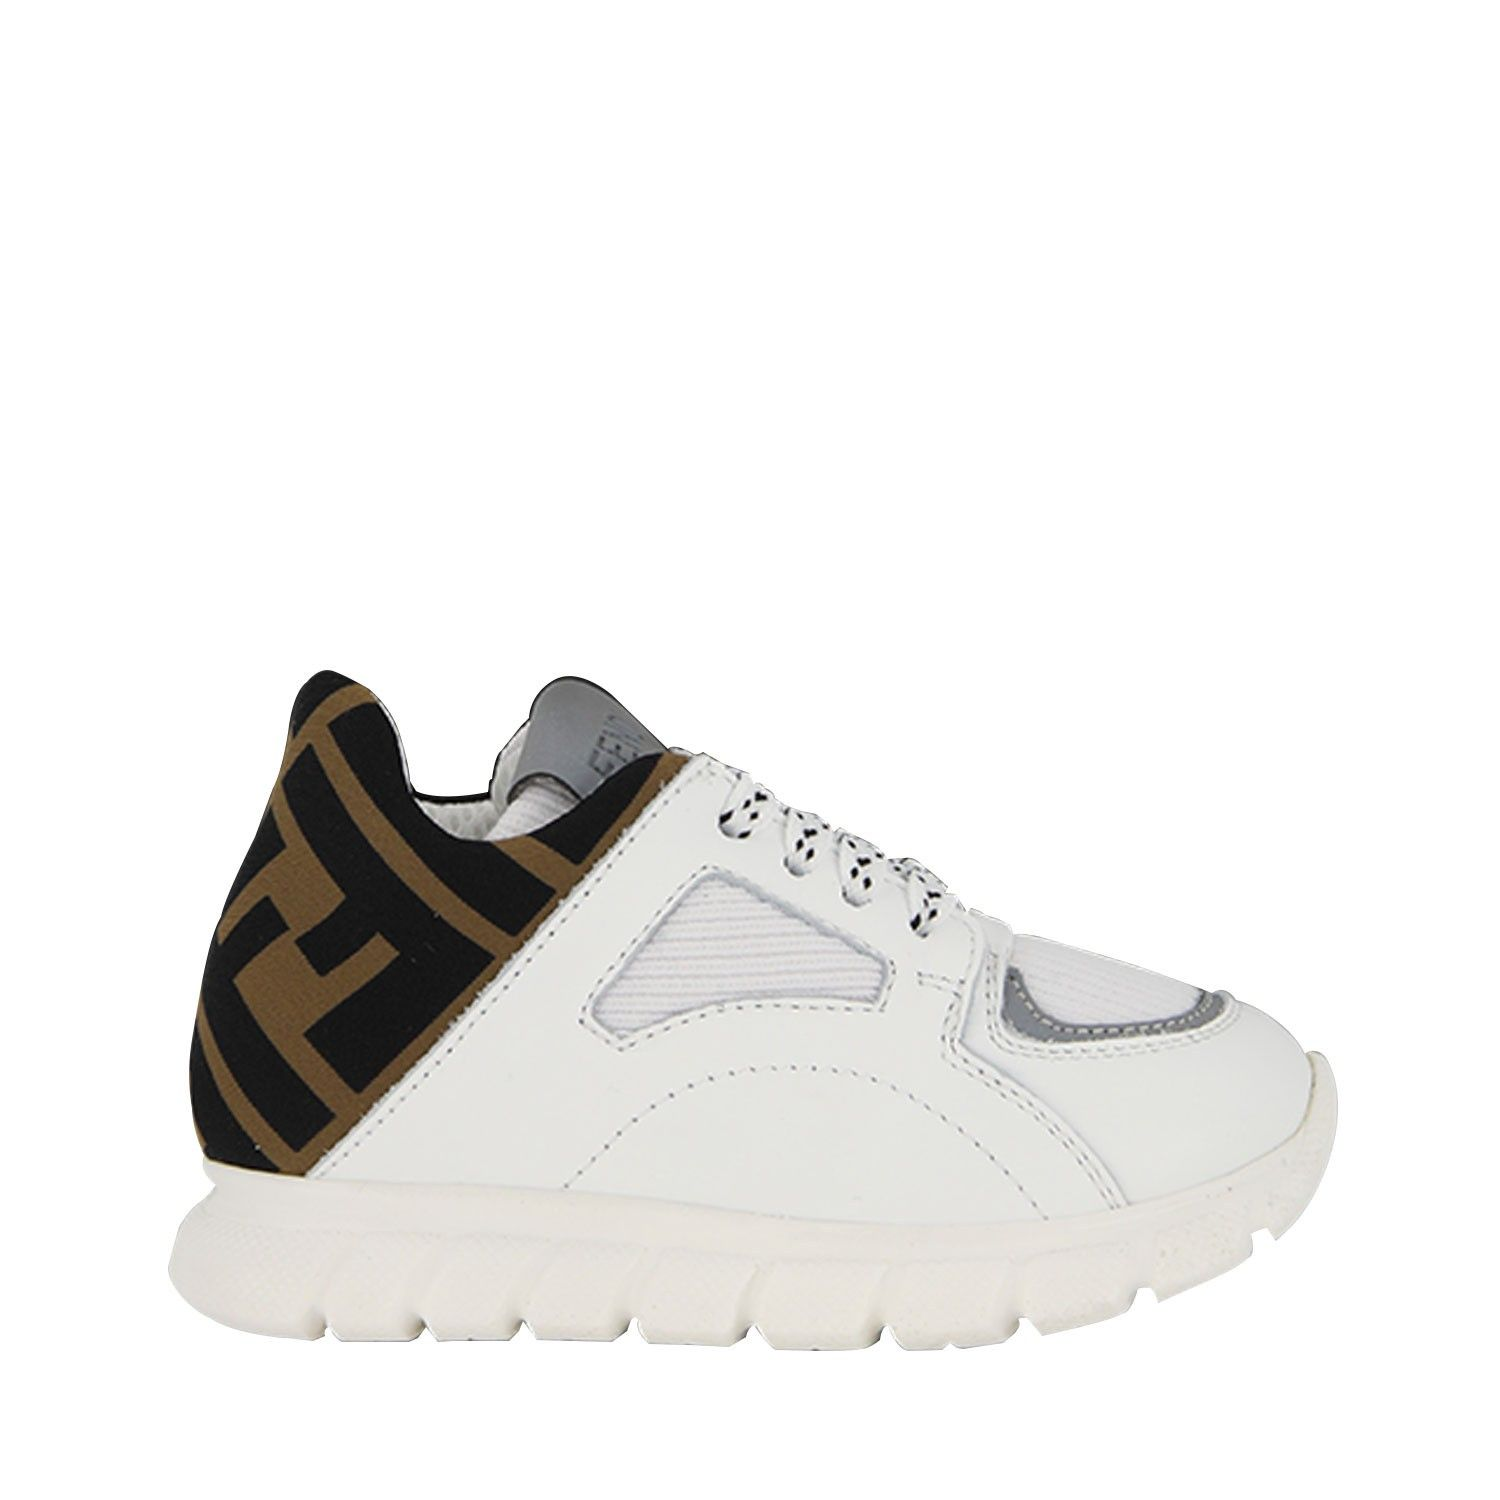 Picture of Fendi JMR334 kids sneakers white